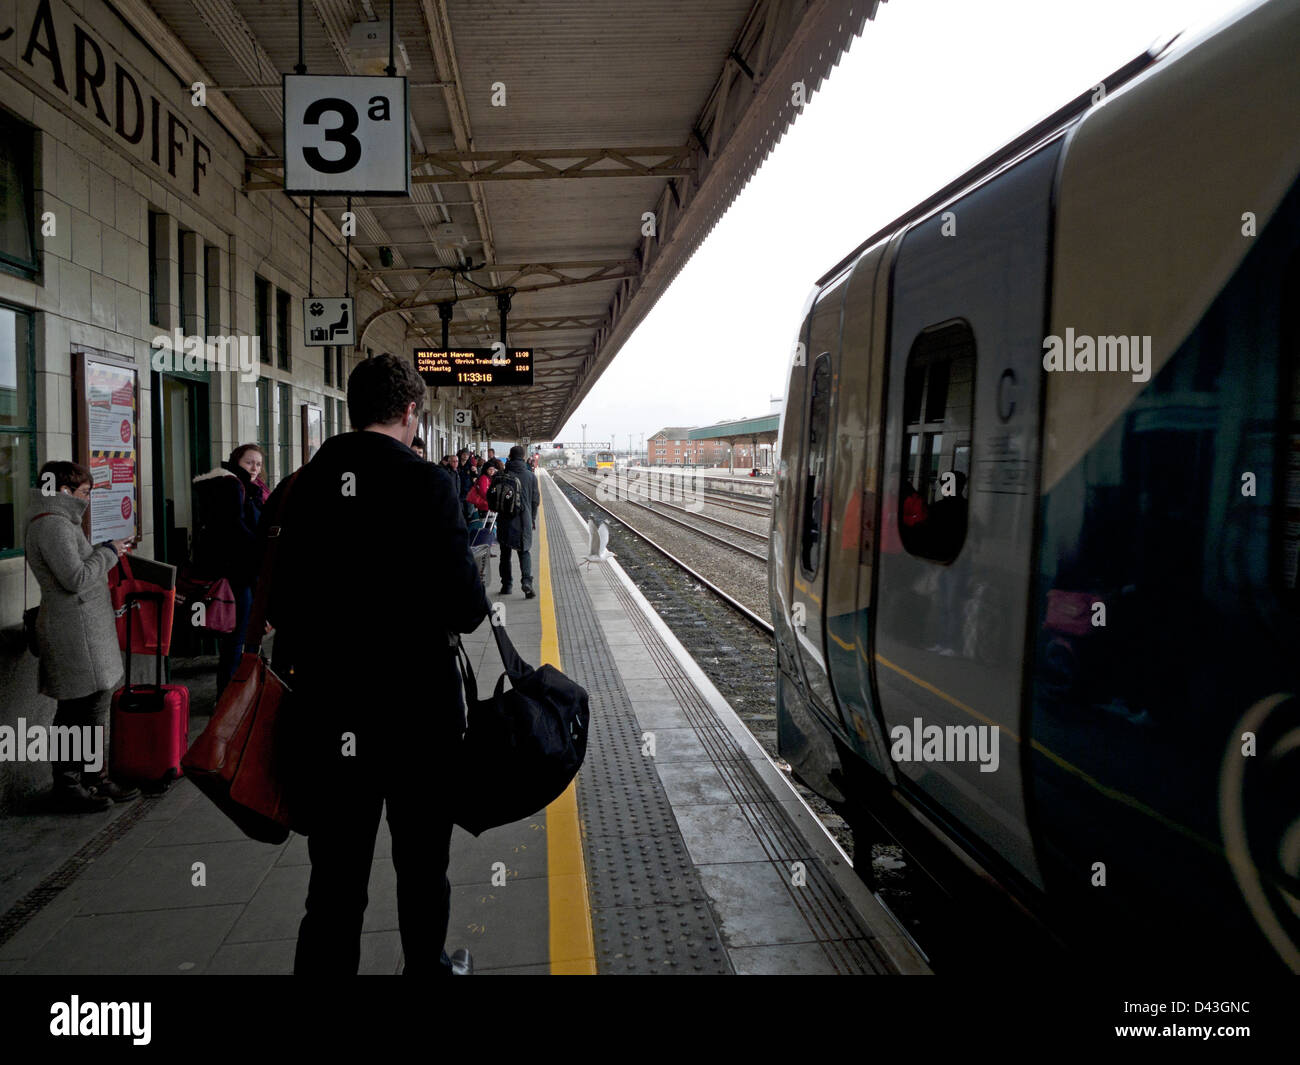 Arriva train approaching with passengers waiting on platform 3a at Cardiff train station South Wales UK - Stock Image